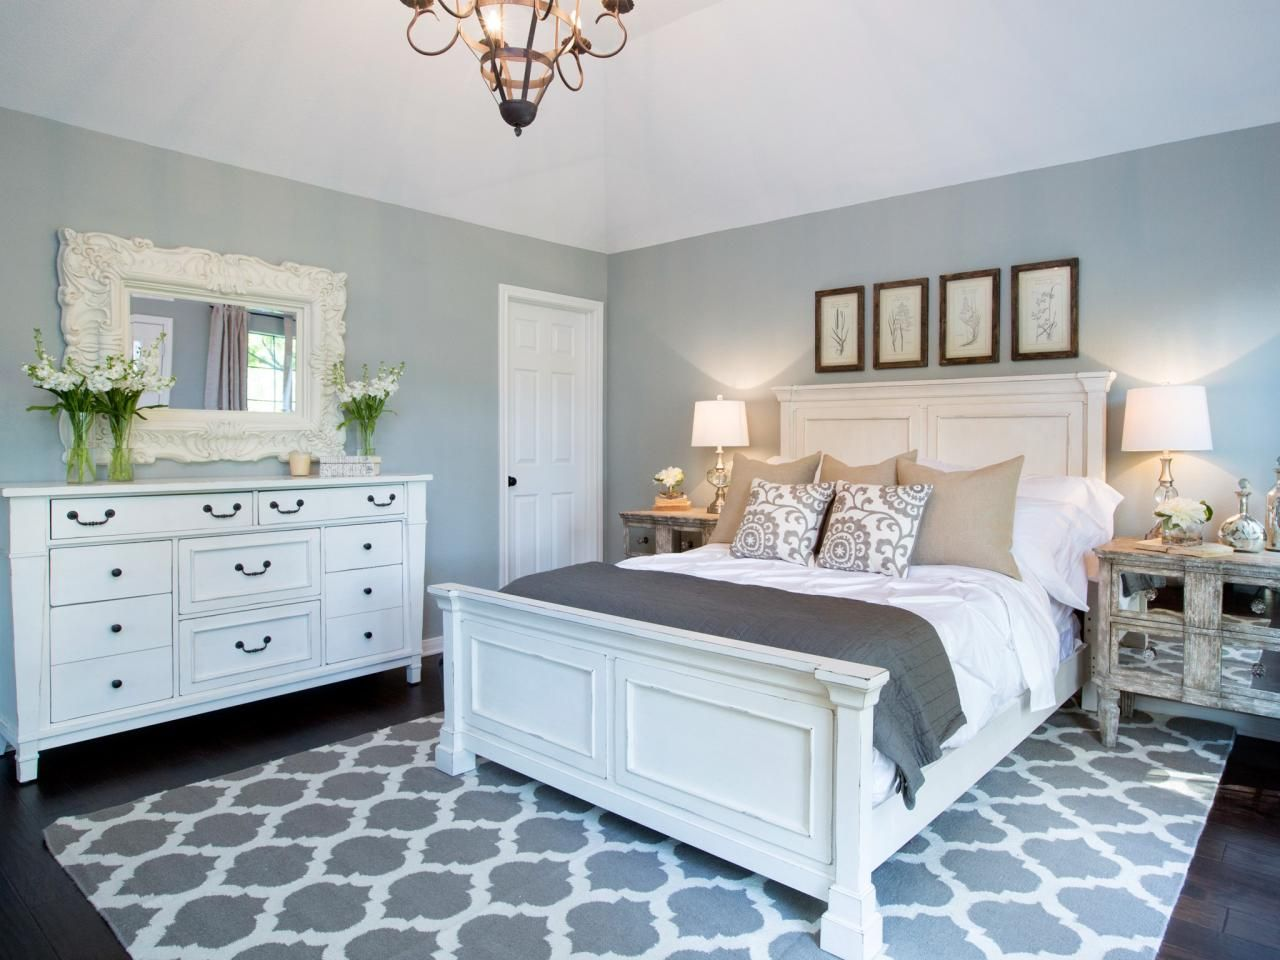 Photos hgtv fixer upper with chip and joanna gaines have black bedroom furniture silver accent handles ordered the same rug lamps white shades ribbings